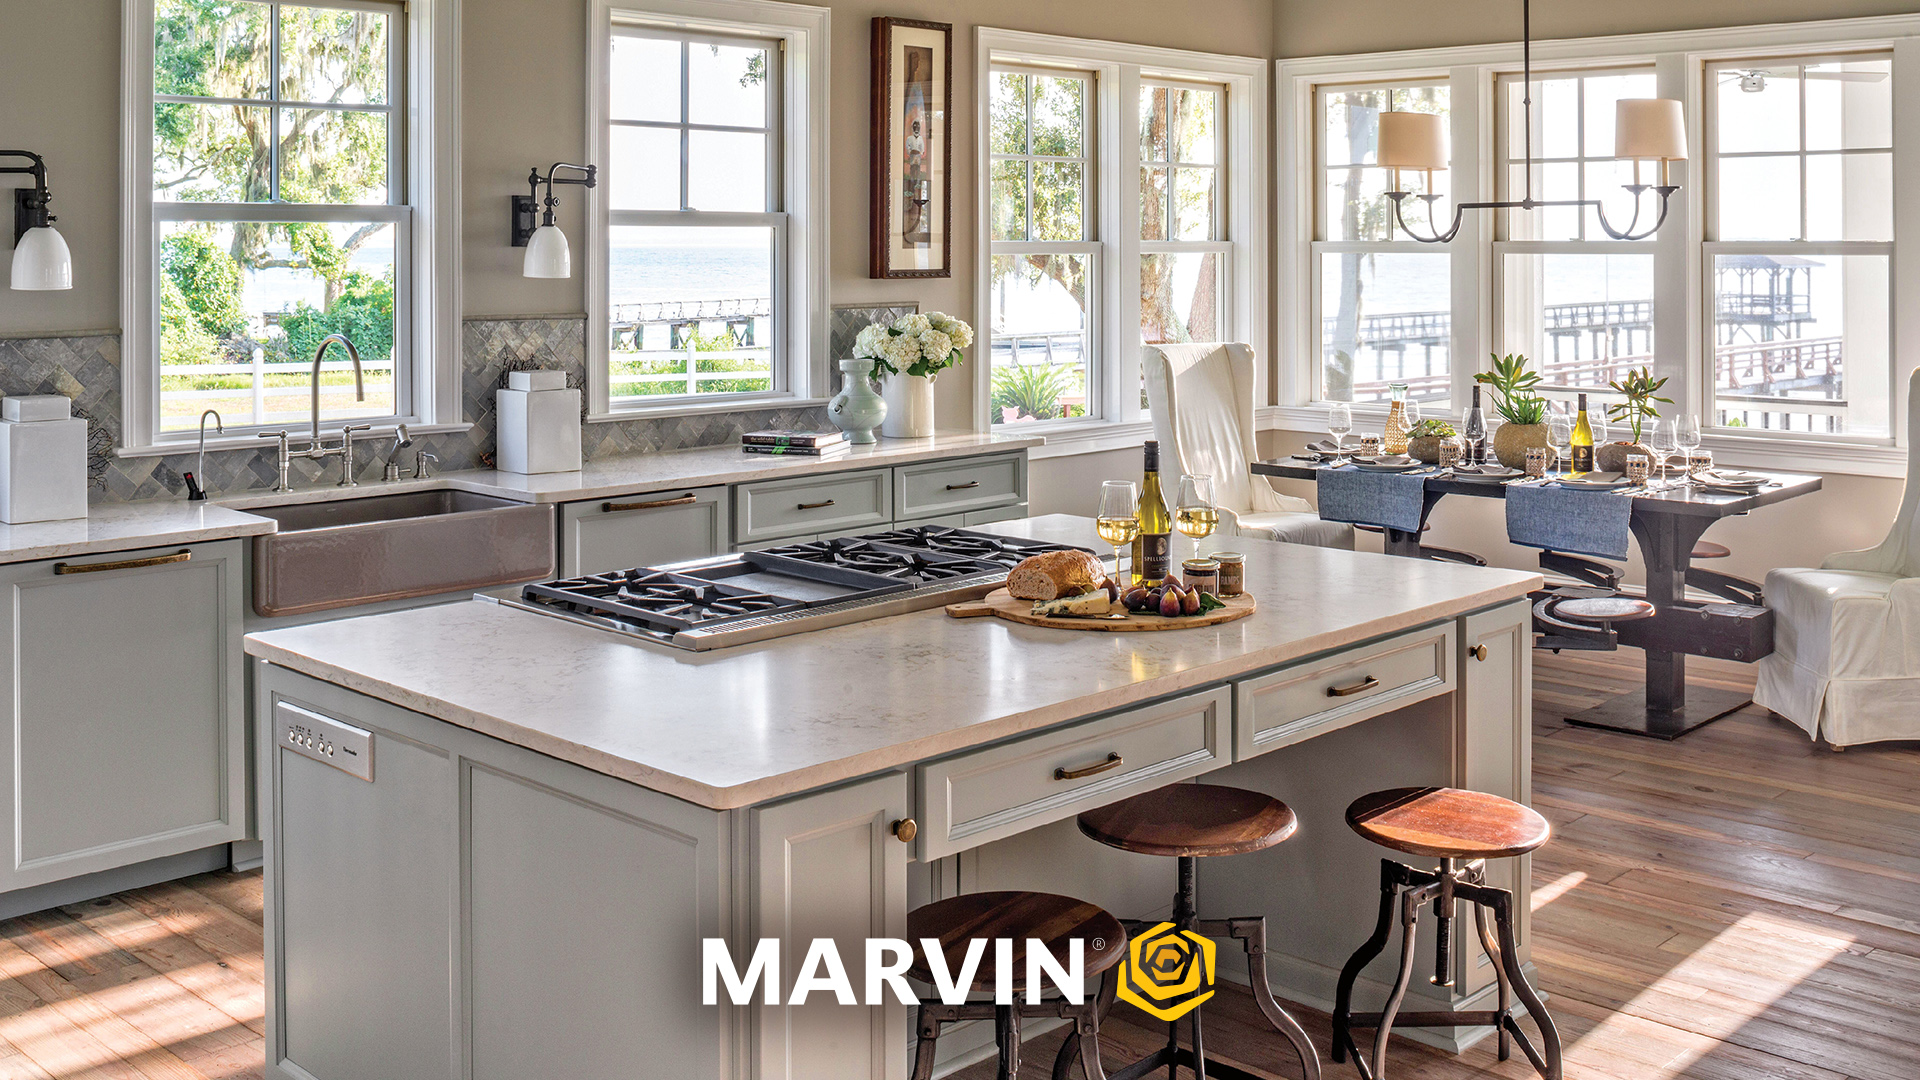 Neutral kitchen with Marvin Elevate double hung windows